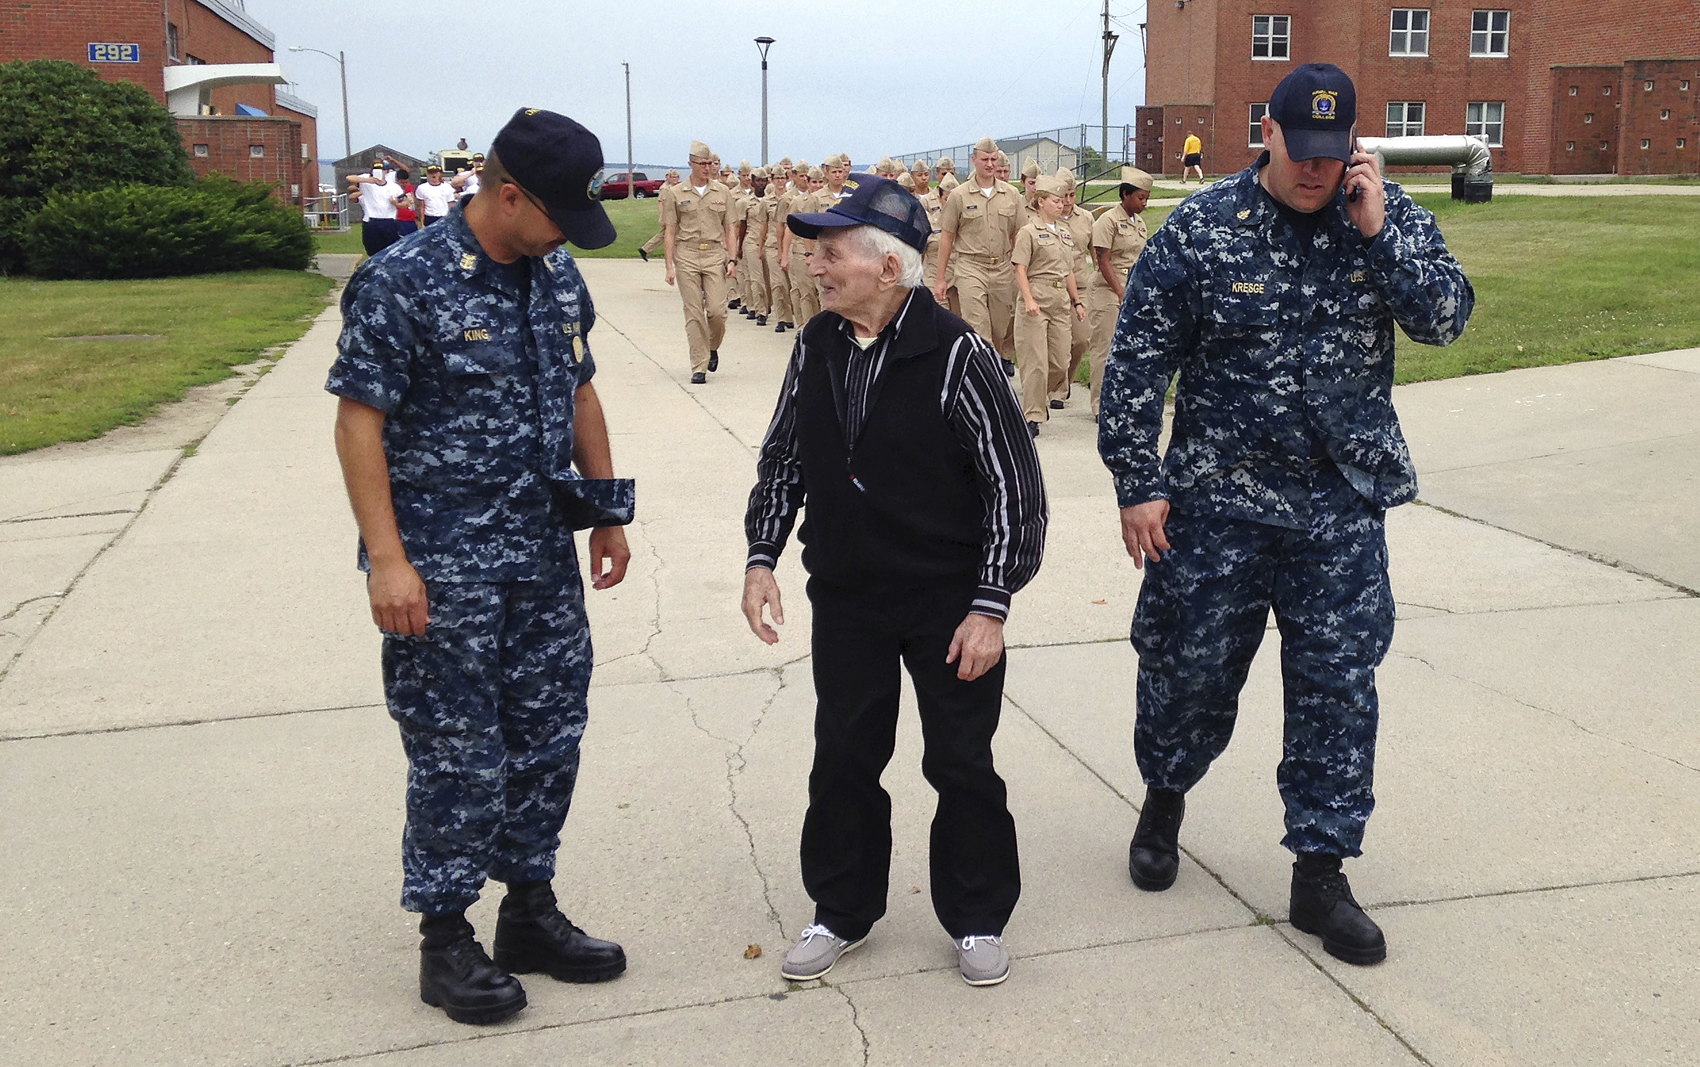 WWII veteran Edmund DelBarone, center, chats with Command Master Chief Paul King, left, during a tour at Naval Station Newport, in Newport, R.I., Thursday July 27, 2017. DelBarone, a 96-year-old World War II veteran, once dreamed of returning to a Navy installation to reminisce about his naval career, and help of a nonprofit it has become a reality. (Jennifer McDermott/AP)